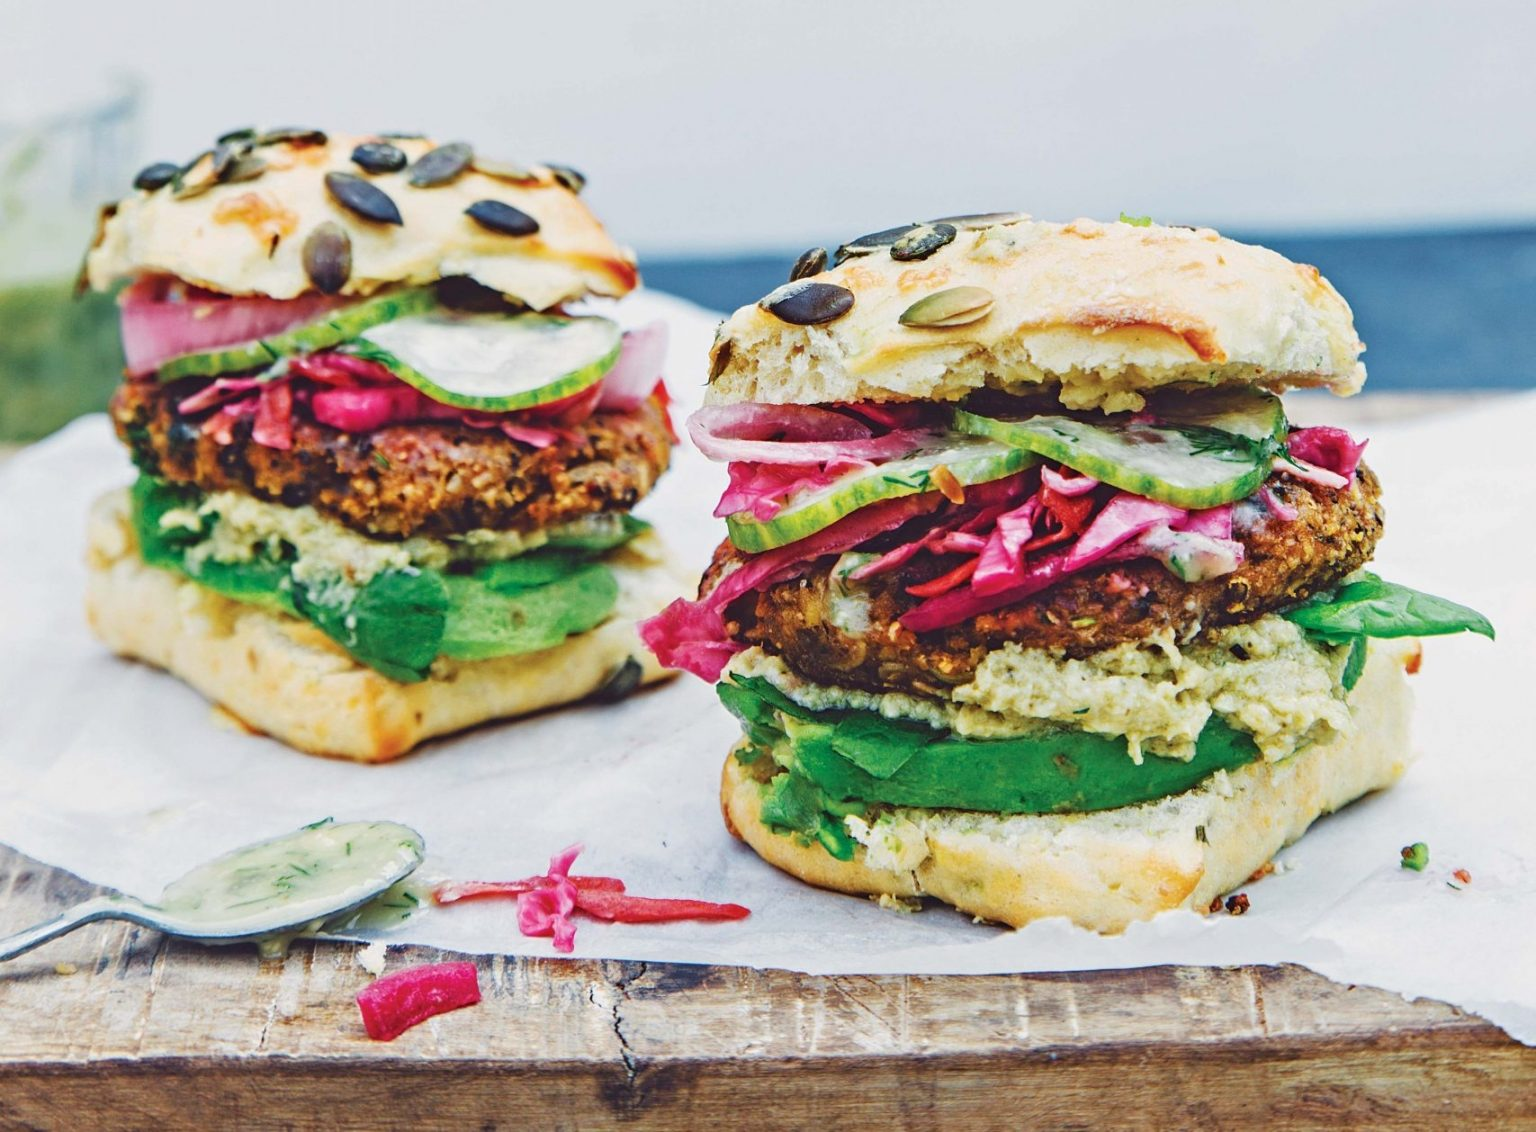 From Picnic Perfect Crispy Tofu Sandwiches to The Natural Antibiotic Juice: 10 Vegan Recipes that Went Viral Last Week!